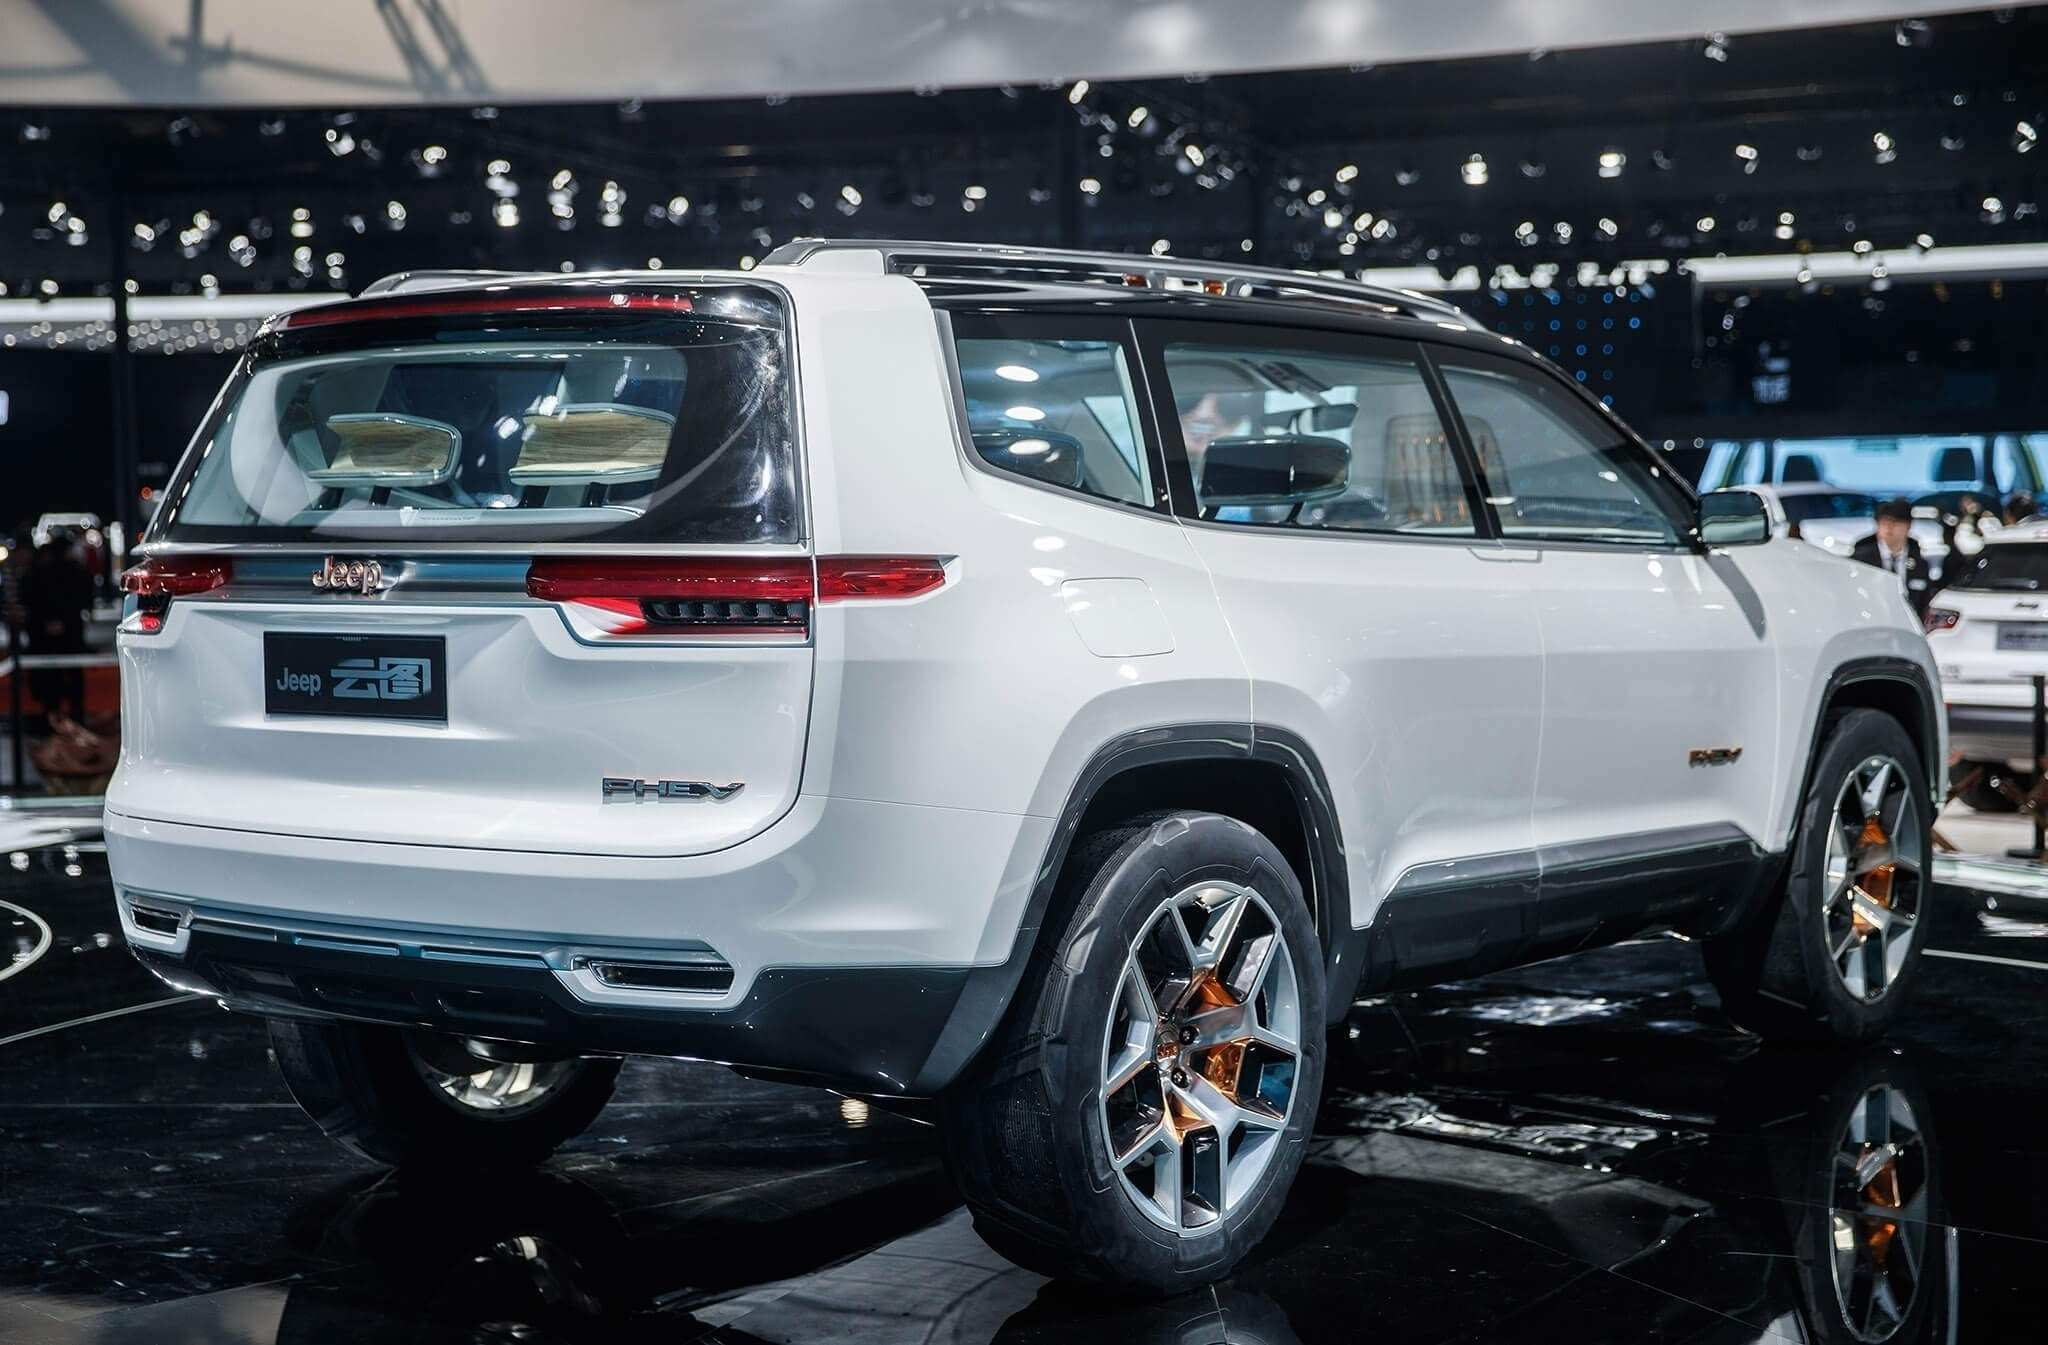 62 The 2020 Jeep Grand Wagoneer Interior Specs and Review for 2020 Jeep Grand Wagoneer Interior